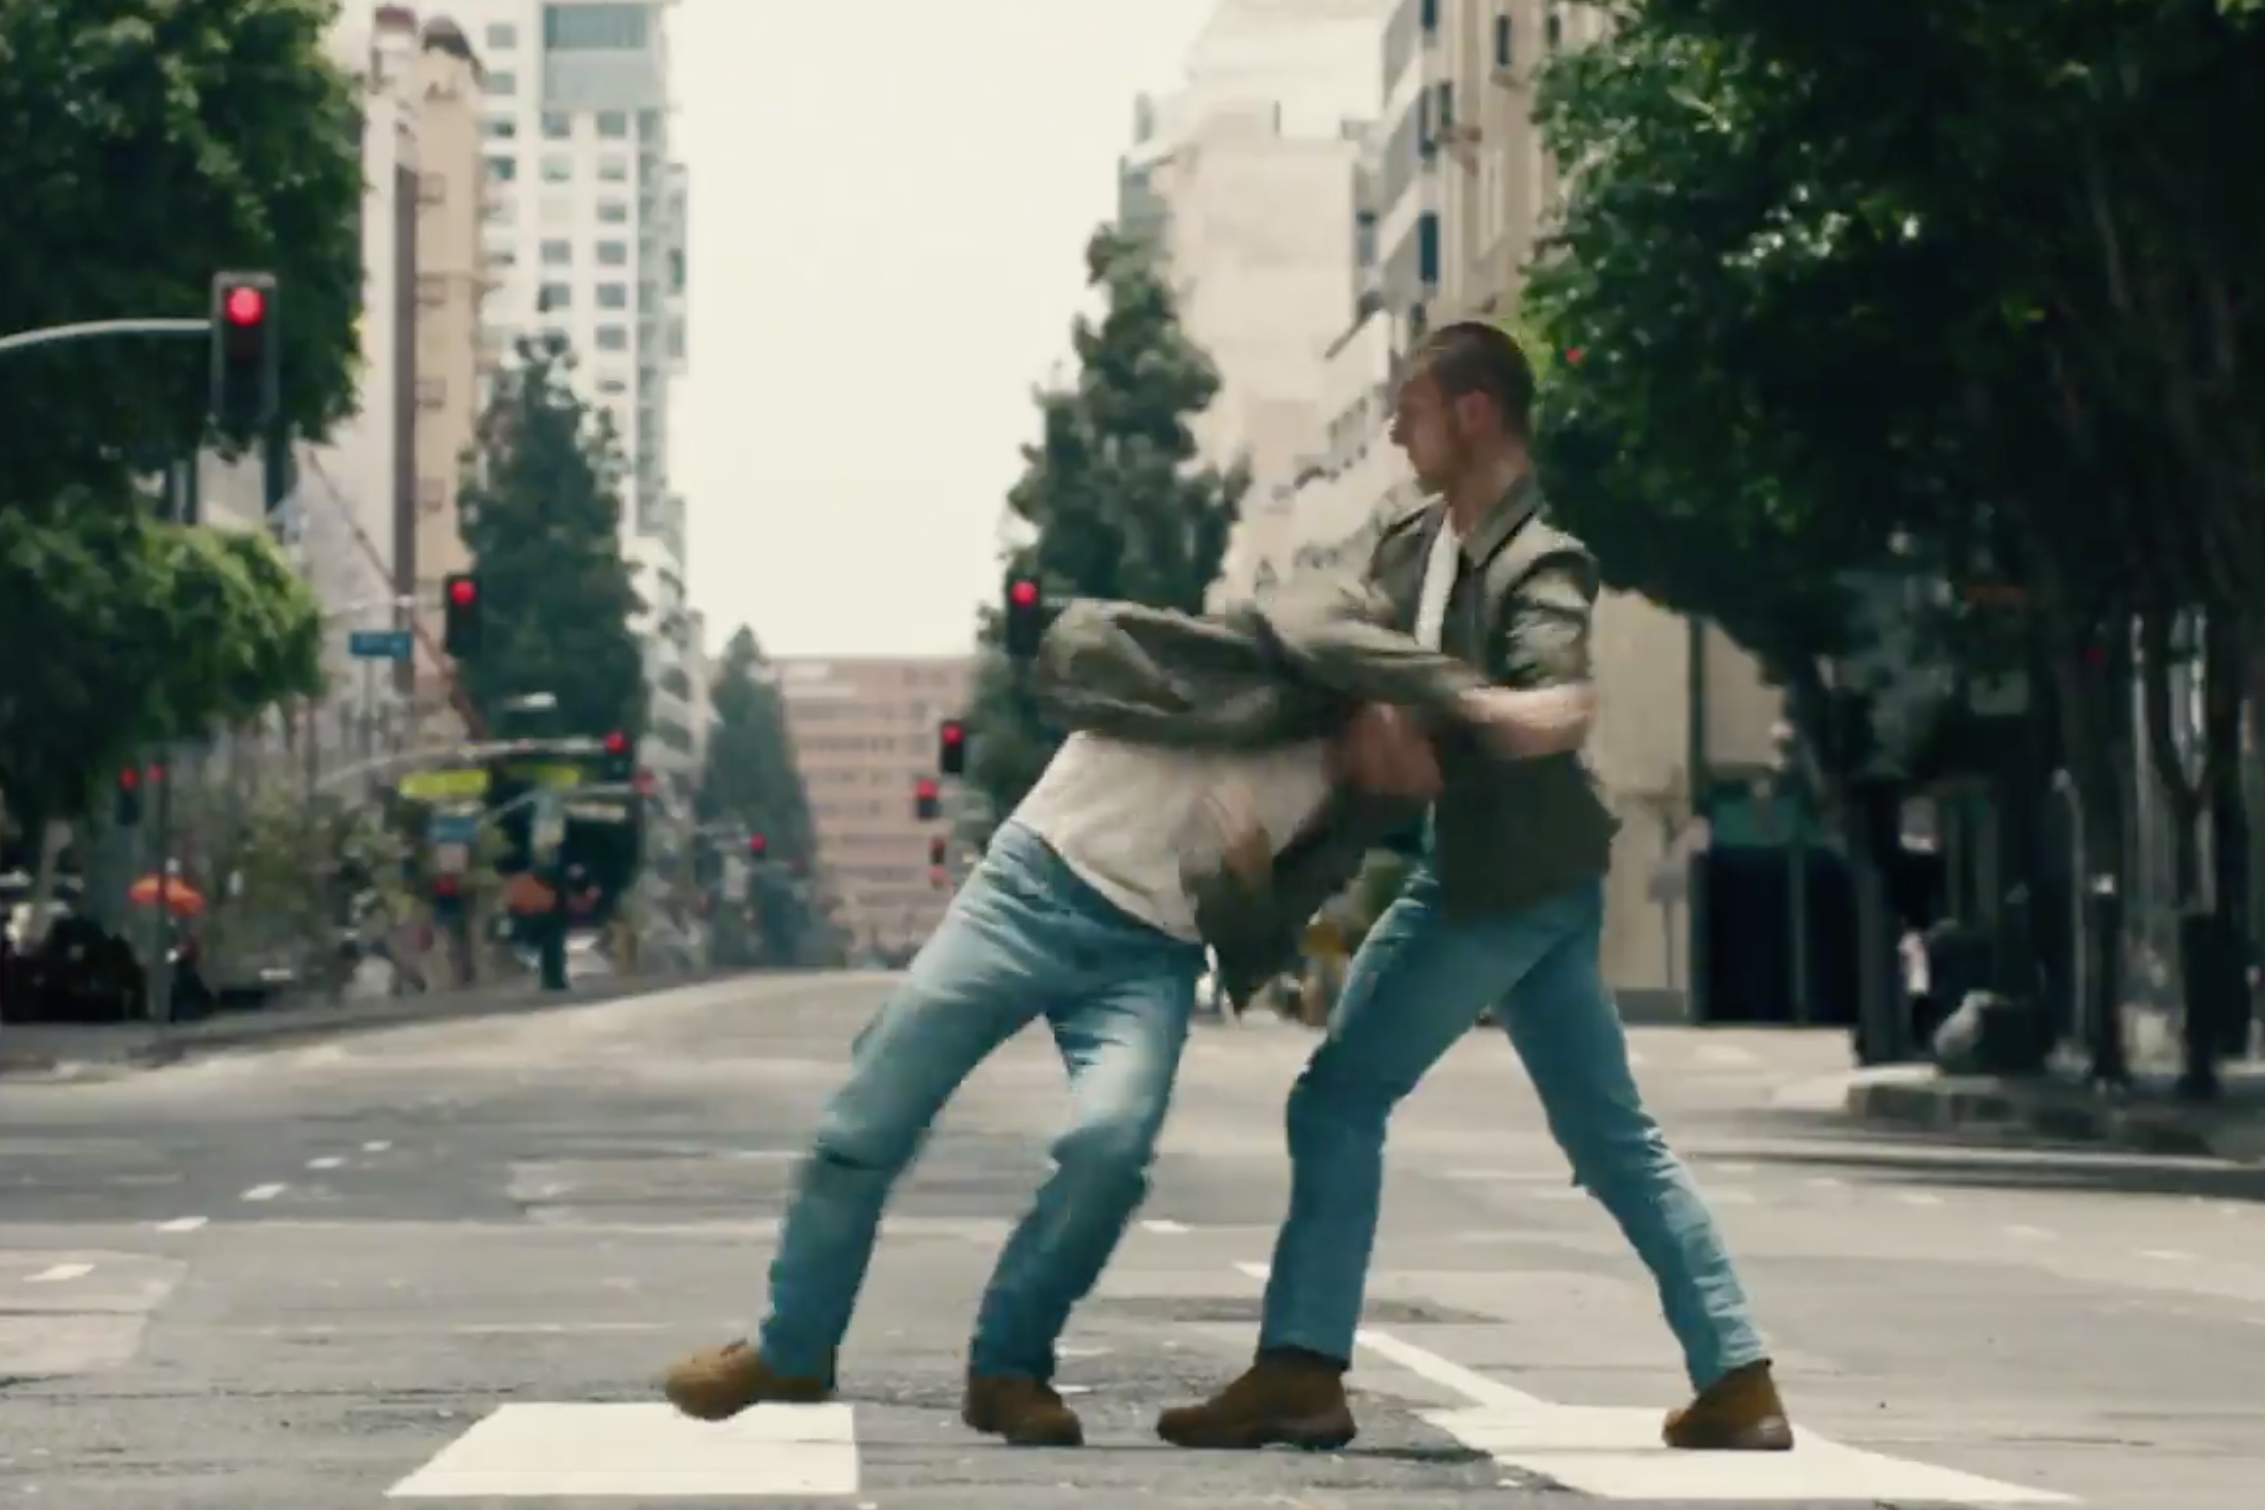 In this World Suicide Prevention Day ad, a man spars with himself, battling invisible guilt